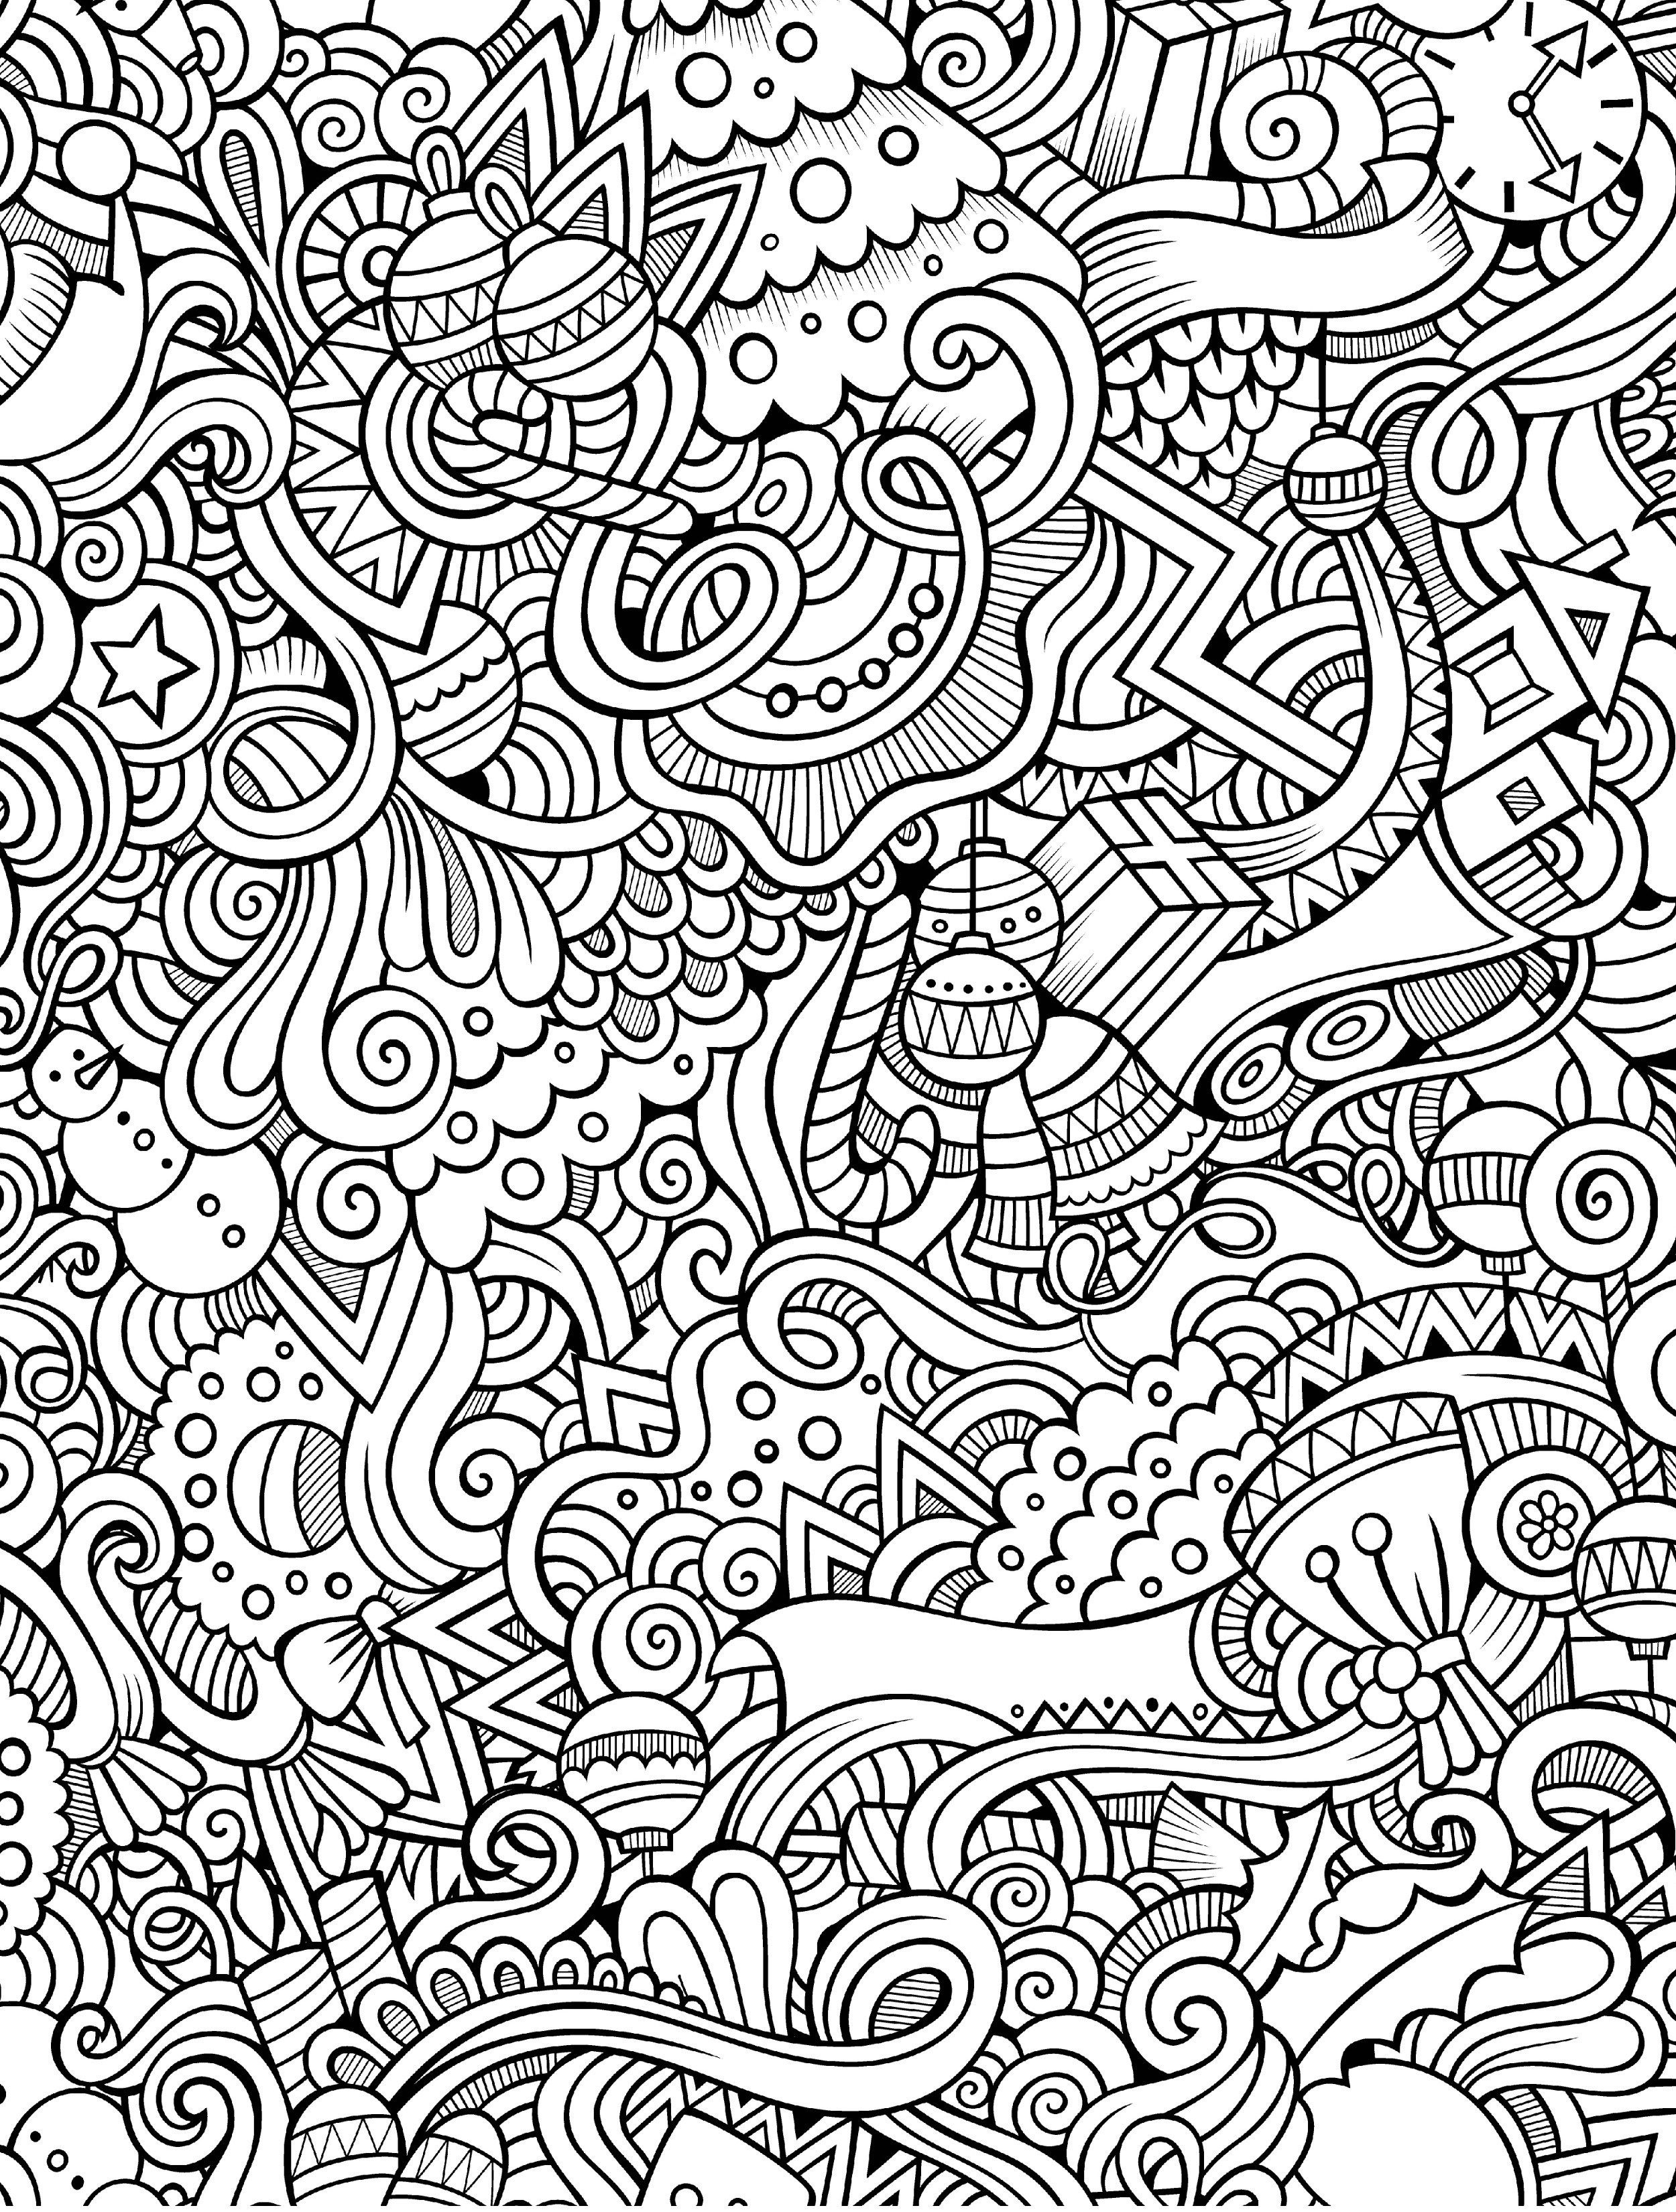 10 Free Printable Holiday Adult Coloring Pages   Coloring Pages - Free Printable Coloring Pages For Adults Pdf